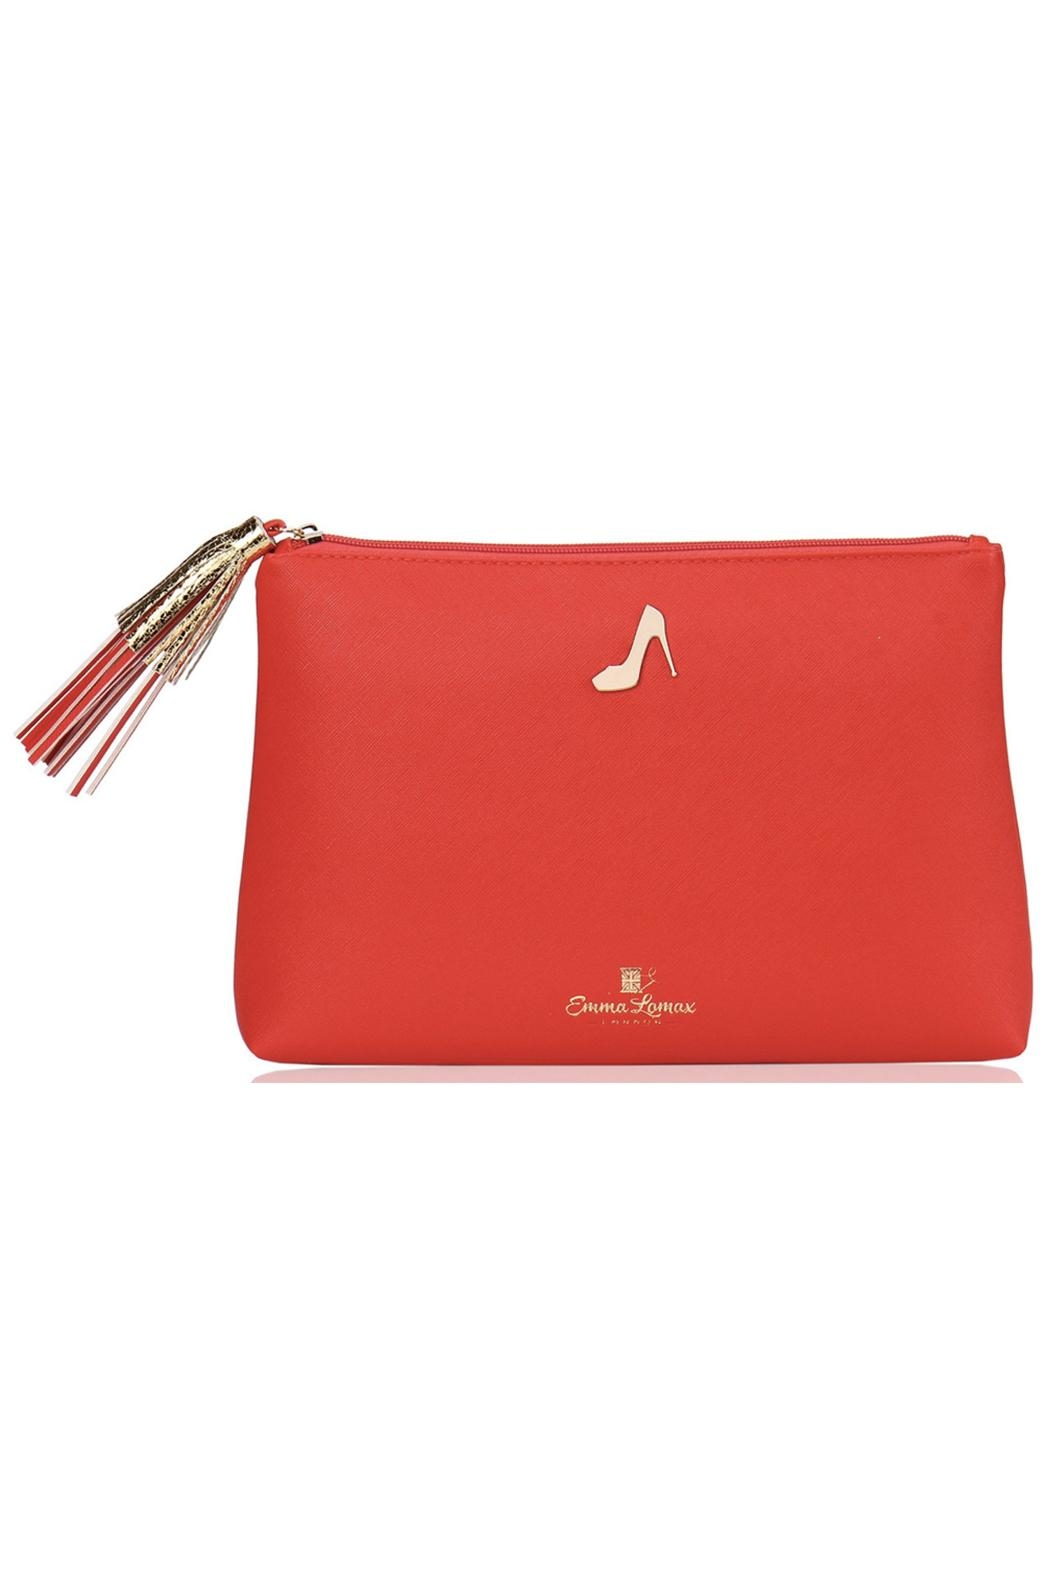 Emma Lomax Paint-Town-Red Clutch - Main Image